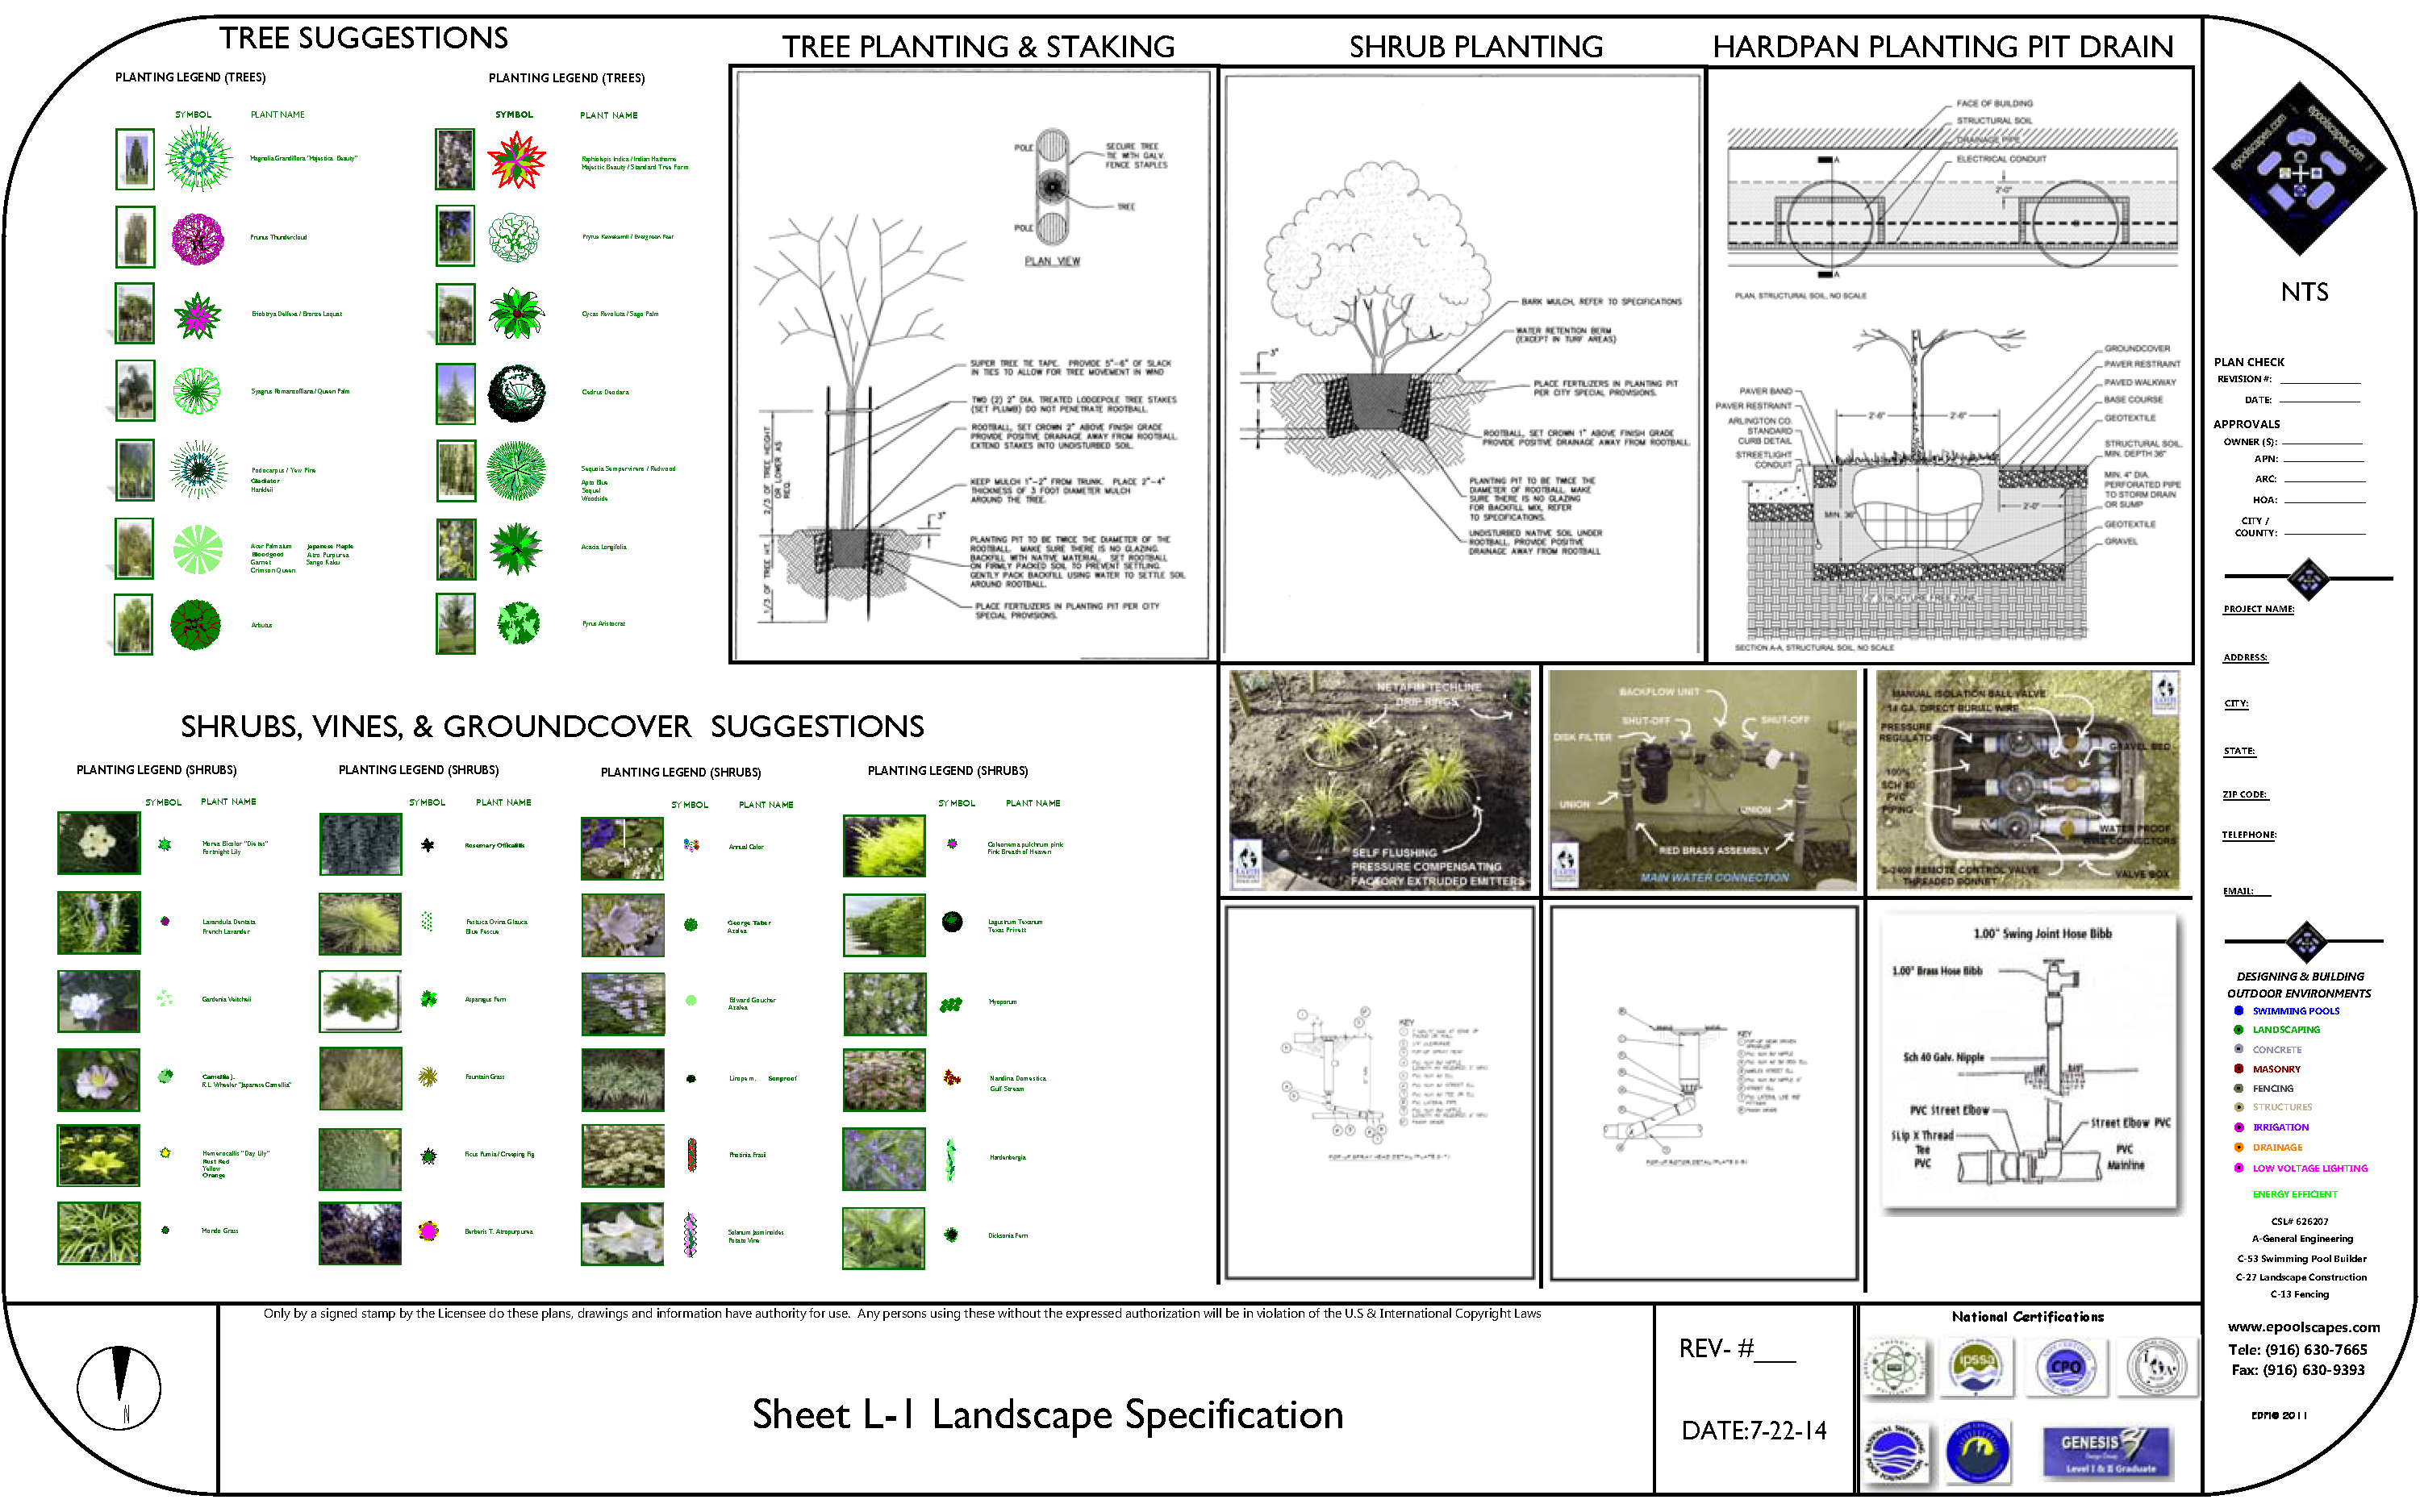 Landscape Specifications